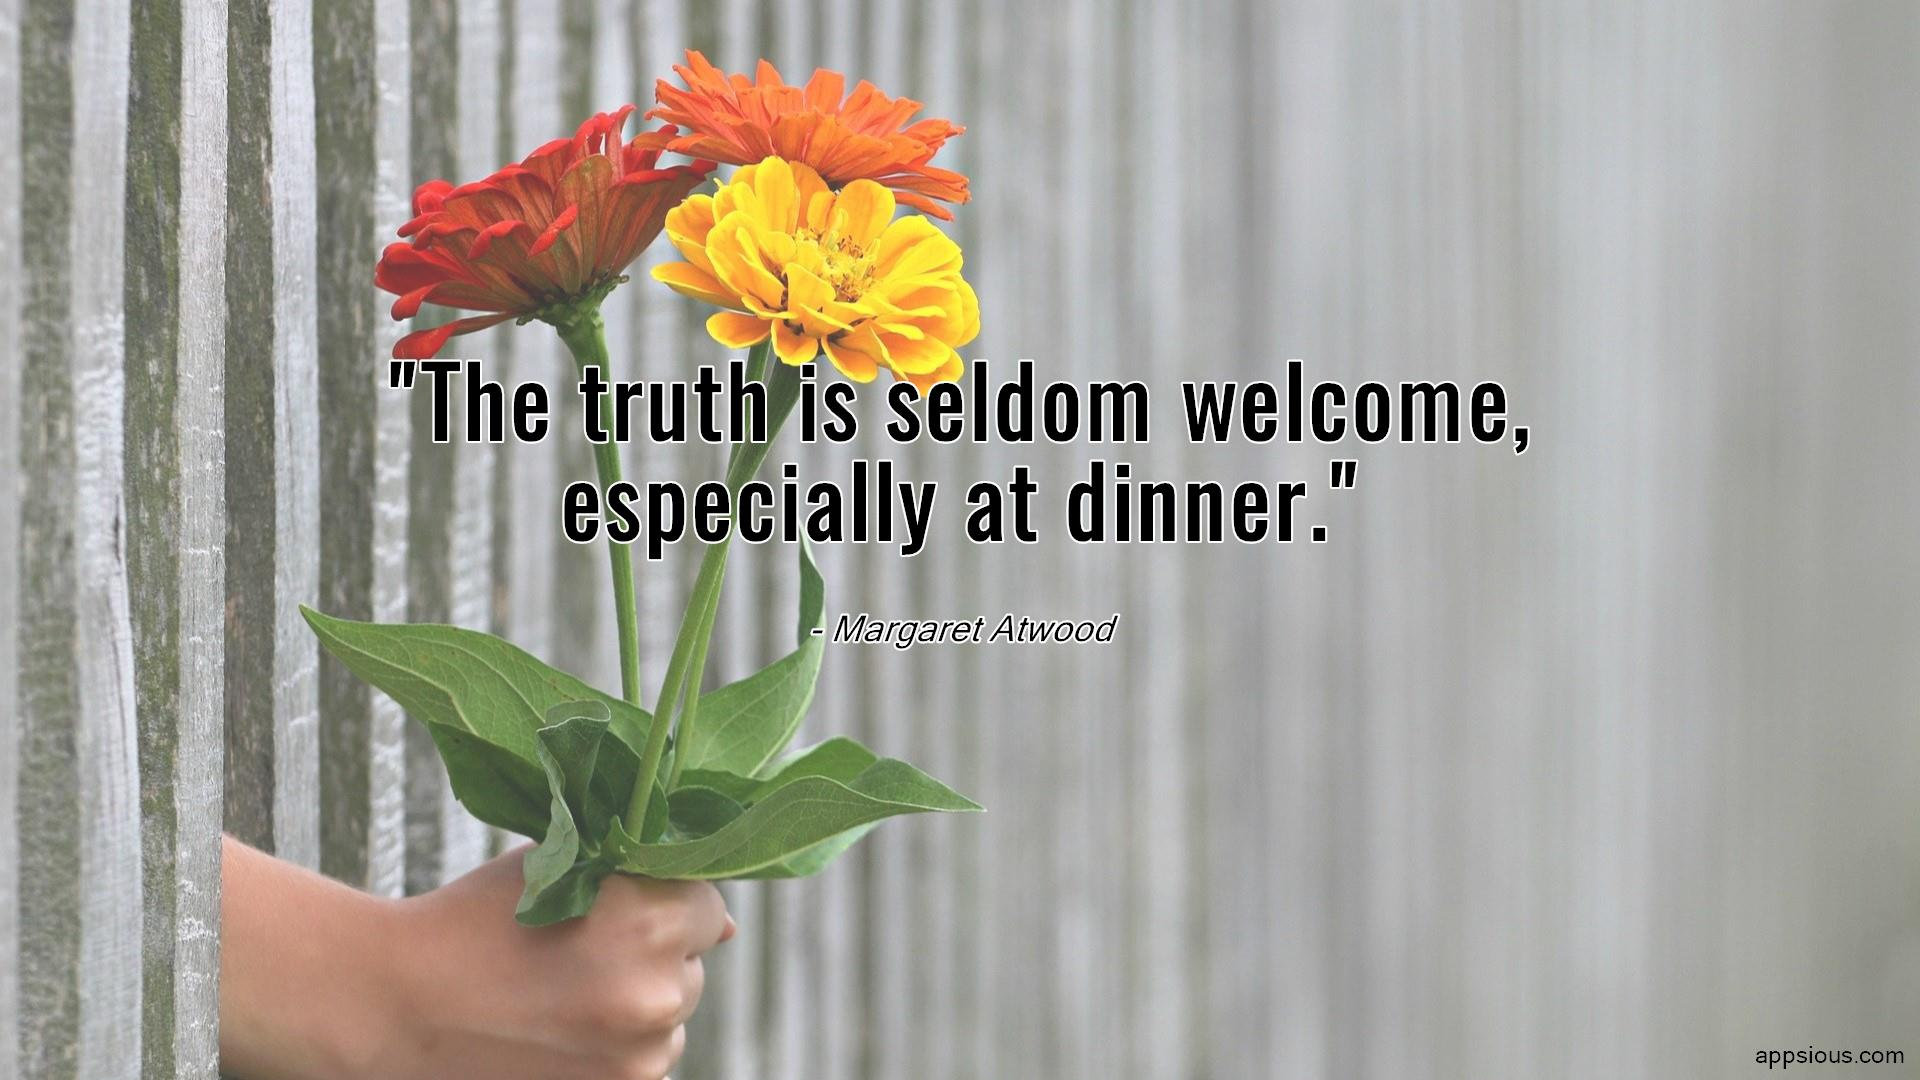 The truth is seldom welcome, especially at dinner.